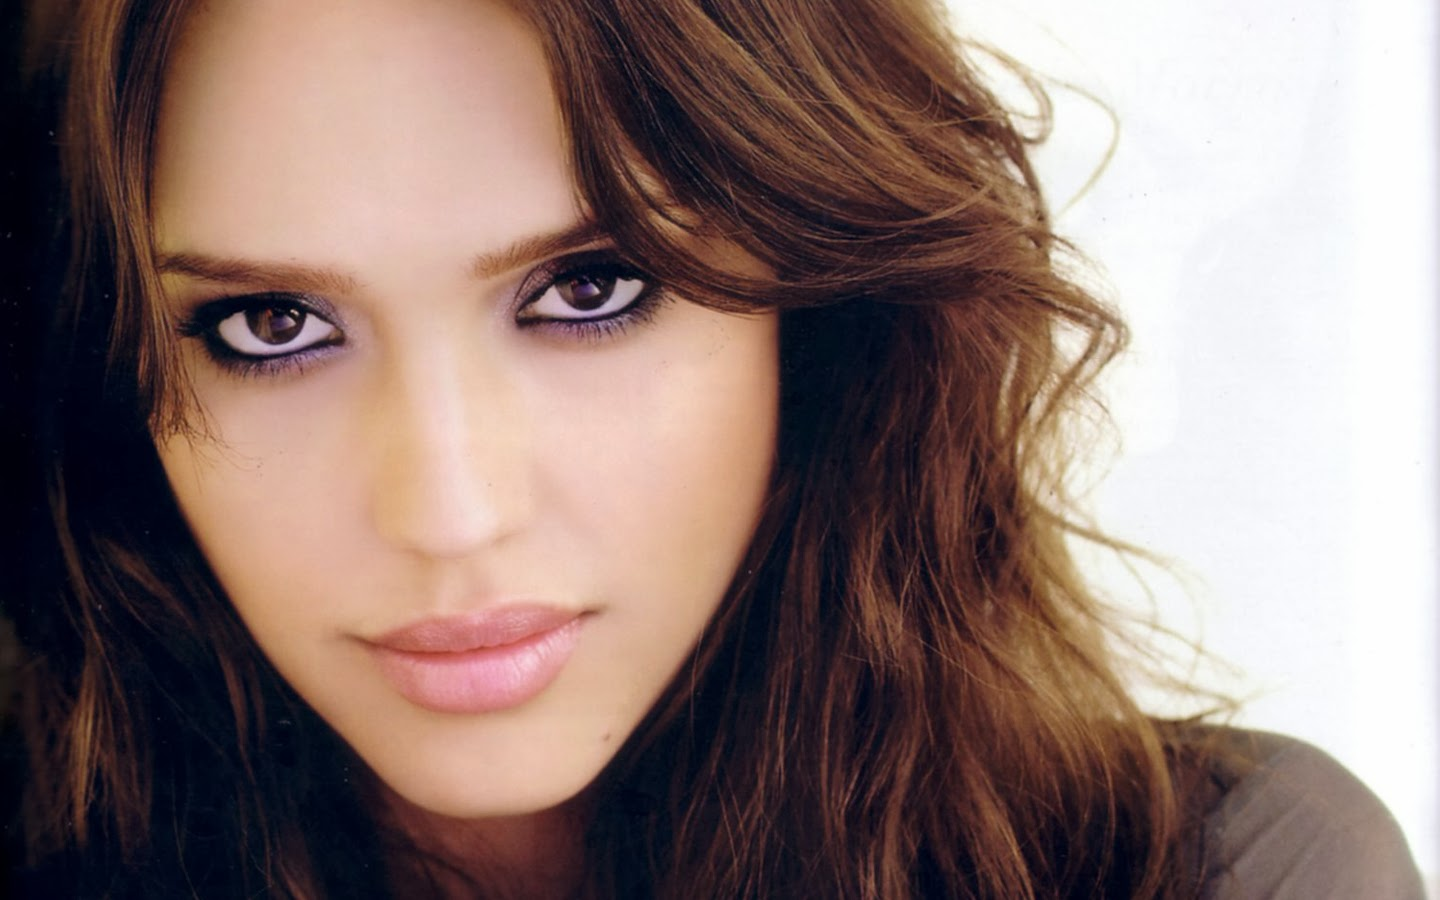 Jessica Alba Wild Eyes Looks